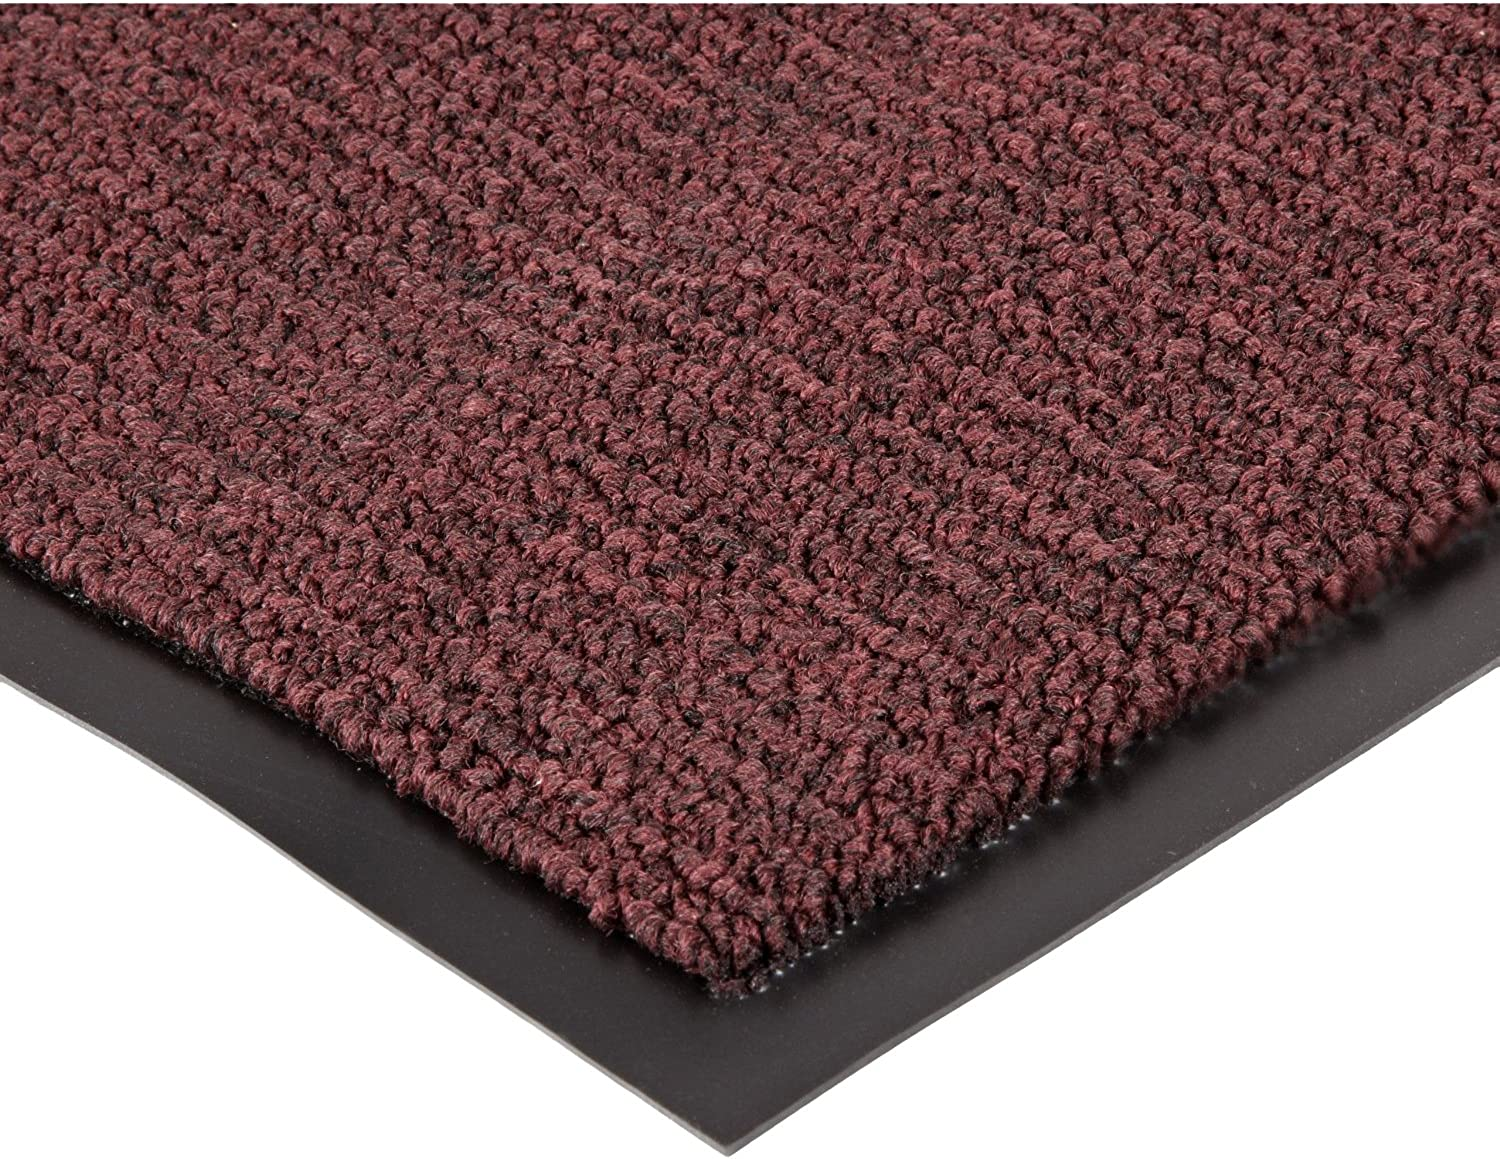 Notrax 132 Estes Entrance Mat, for Main Entranceways and Heavy Traffic Areas, 4' Width x 6' Length x 3 8  Thickness, Burgundy